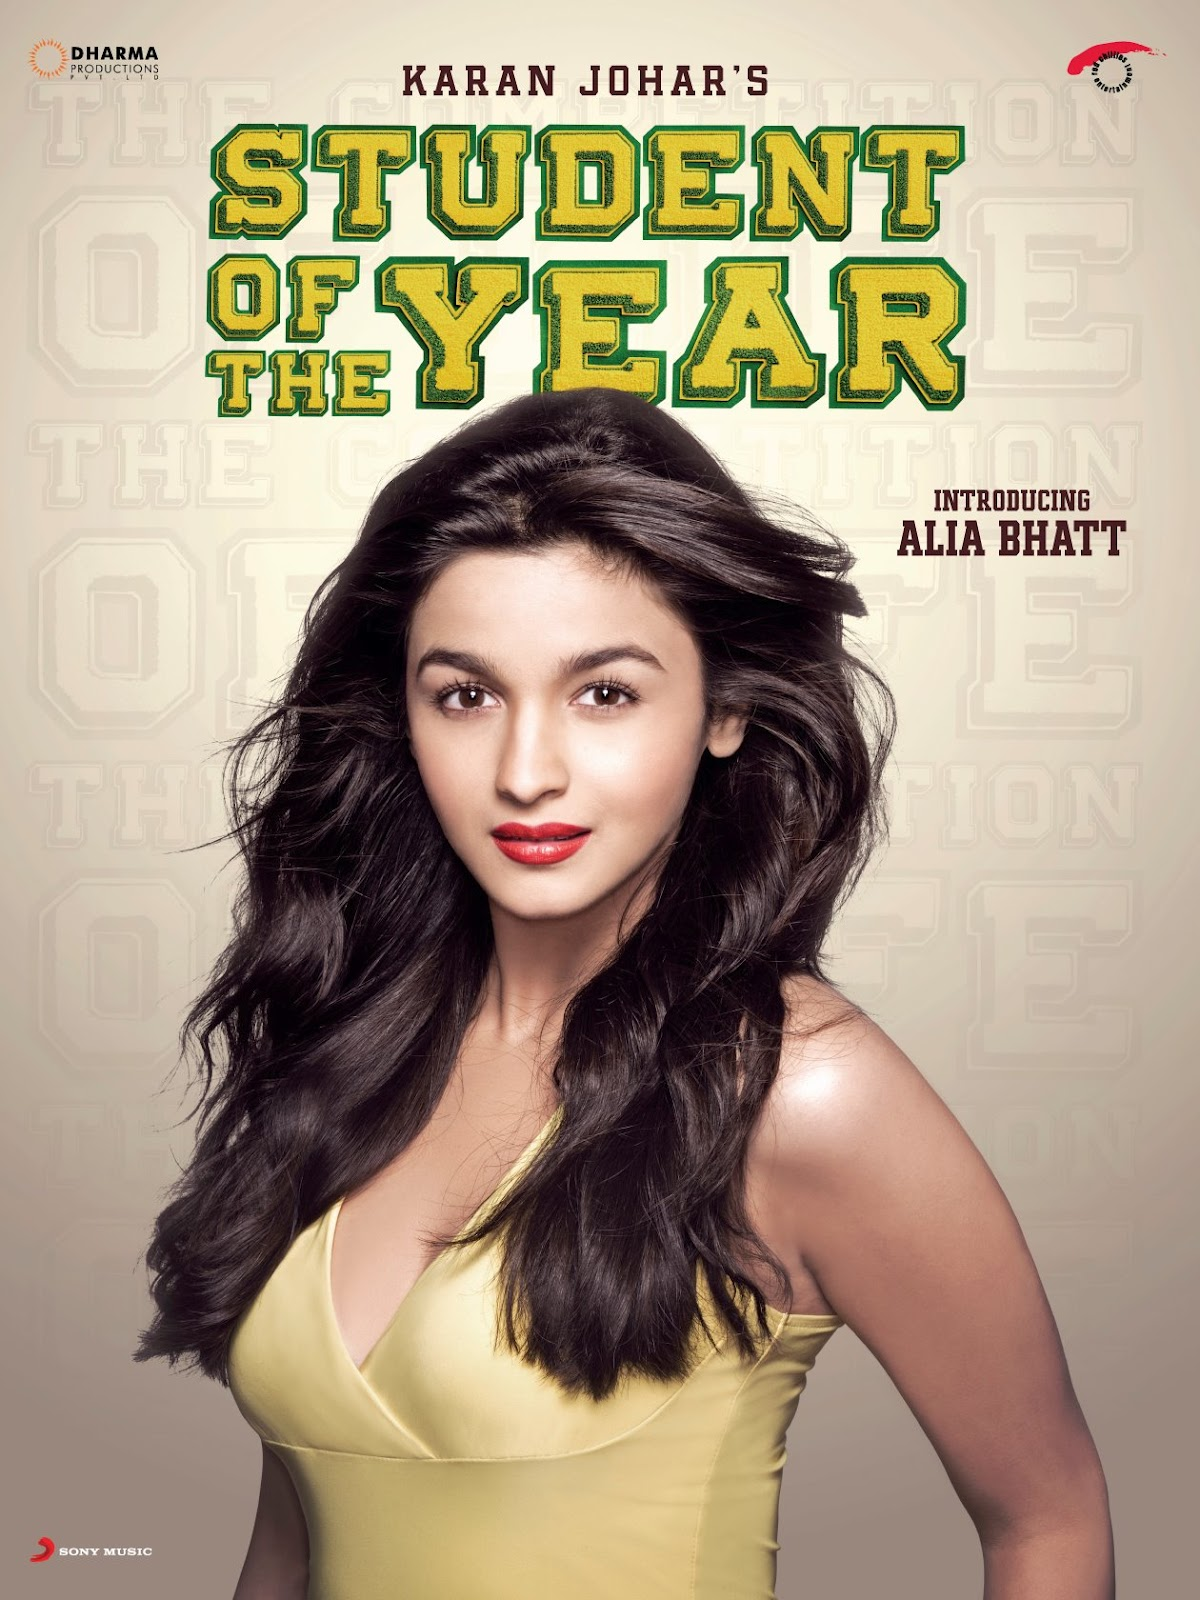 First Look Posters Introducing Alia Bhatt